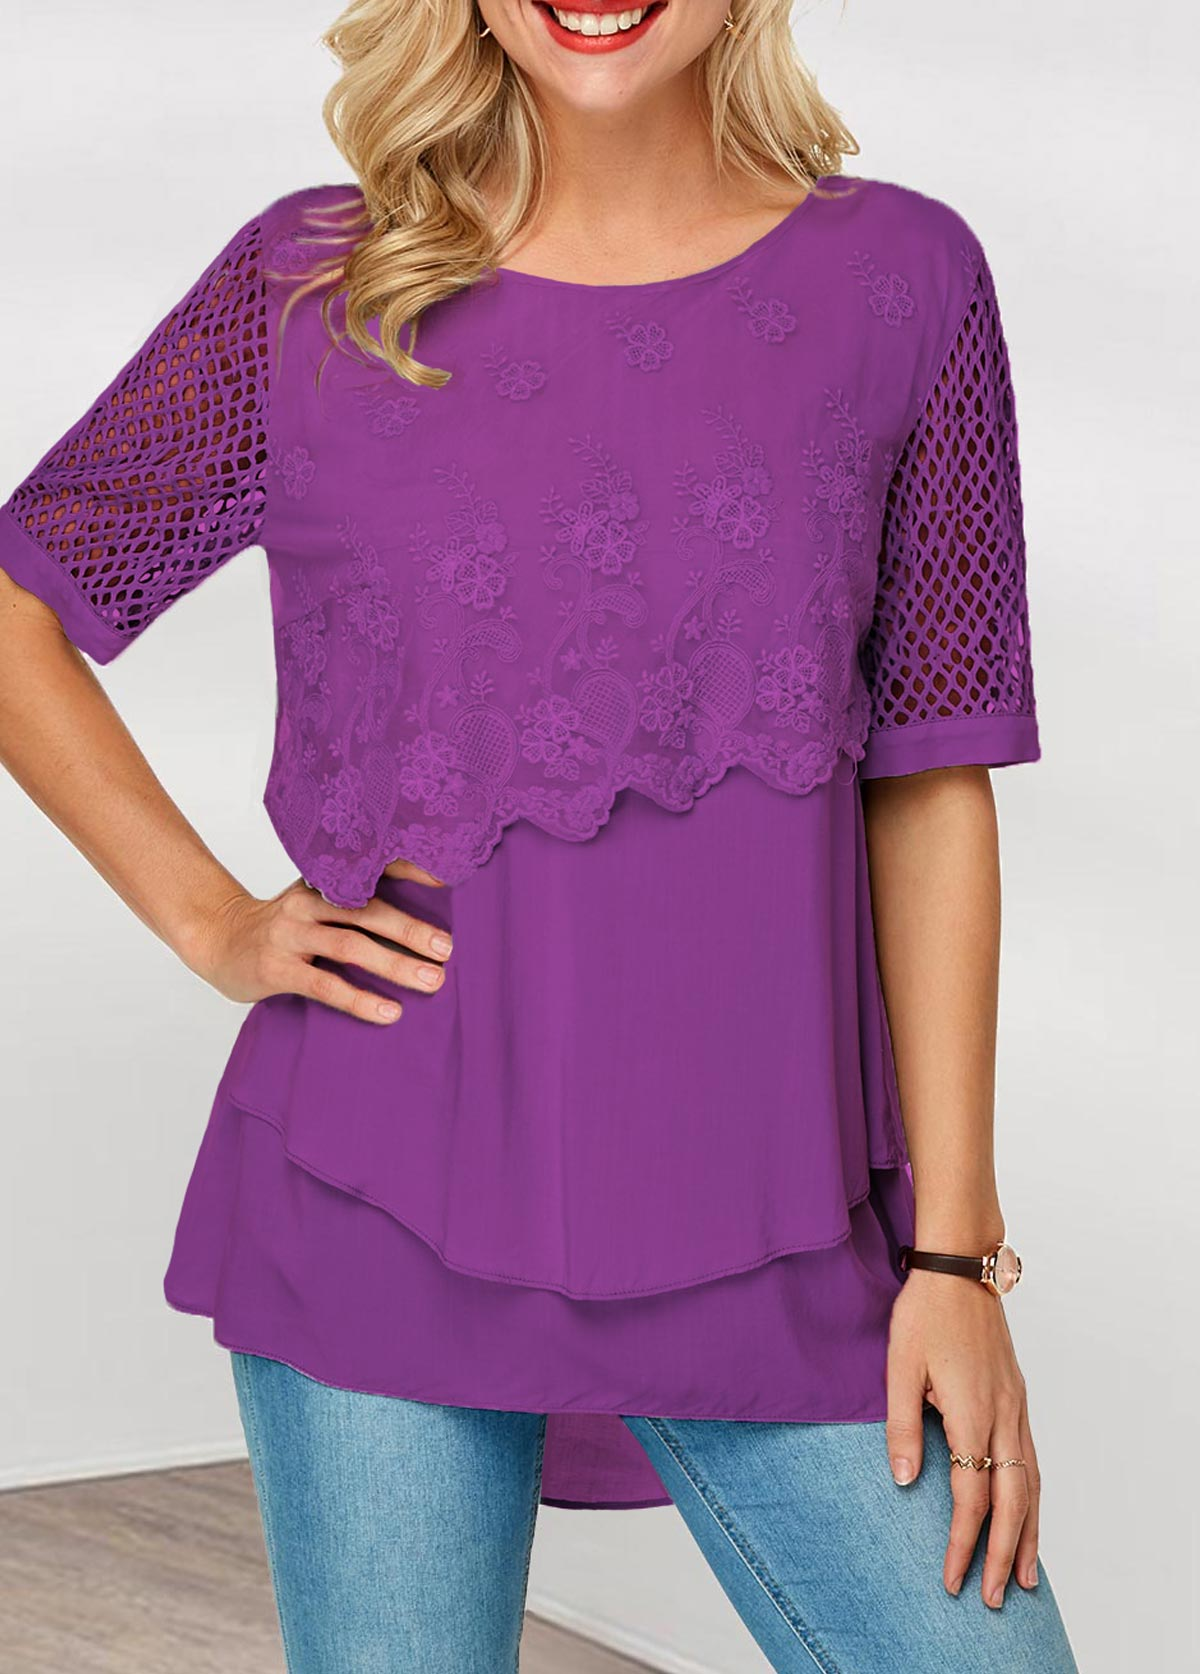 Lace Panel Keyhole Back Layered Hem Blouse